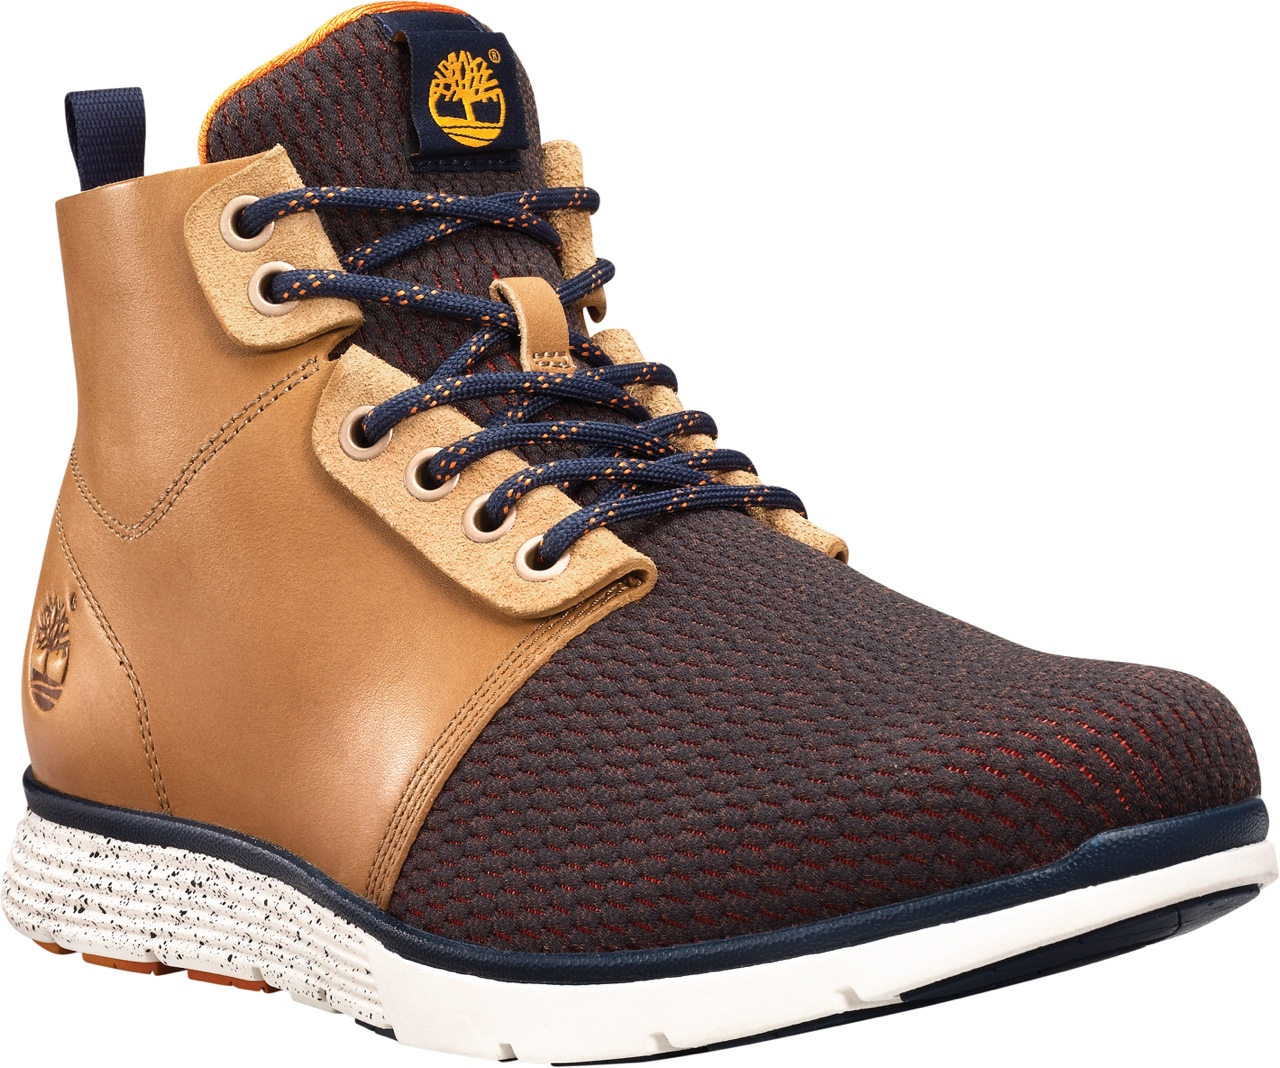 TIMBERLAND Killington Chukka CA12FL £105 www.timberlandonline.co.uk05